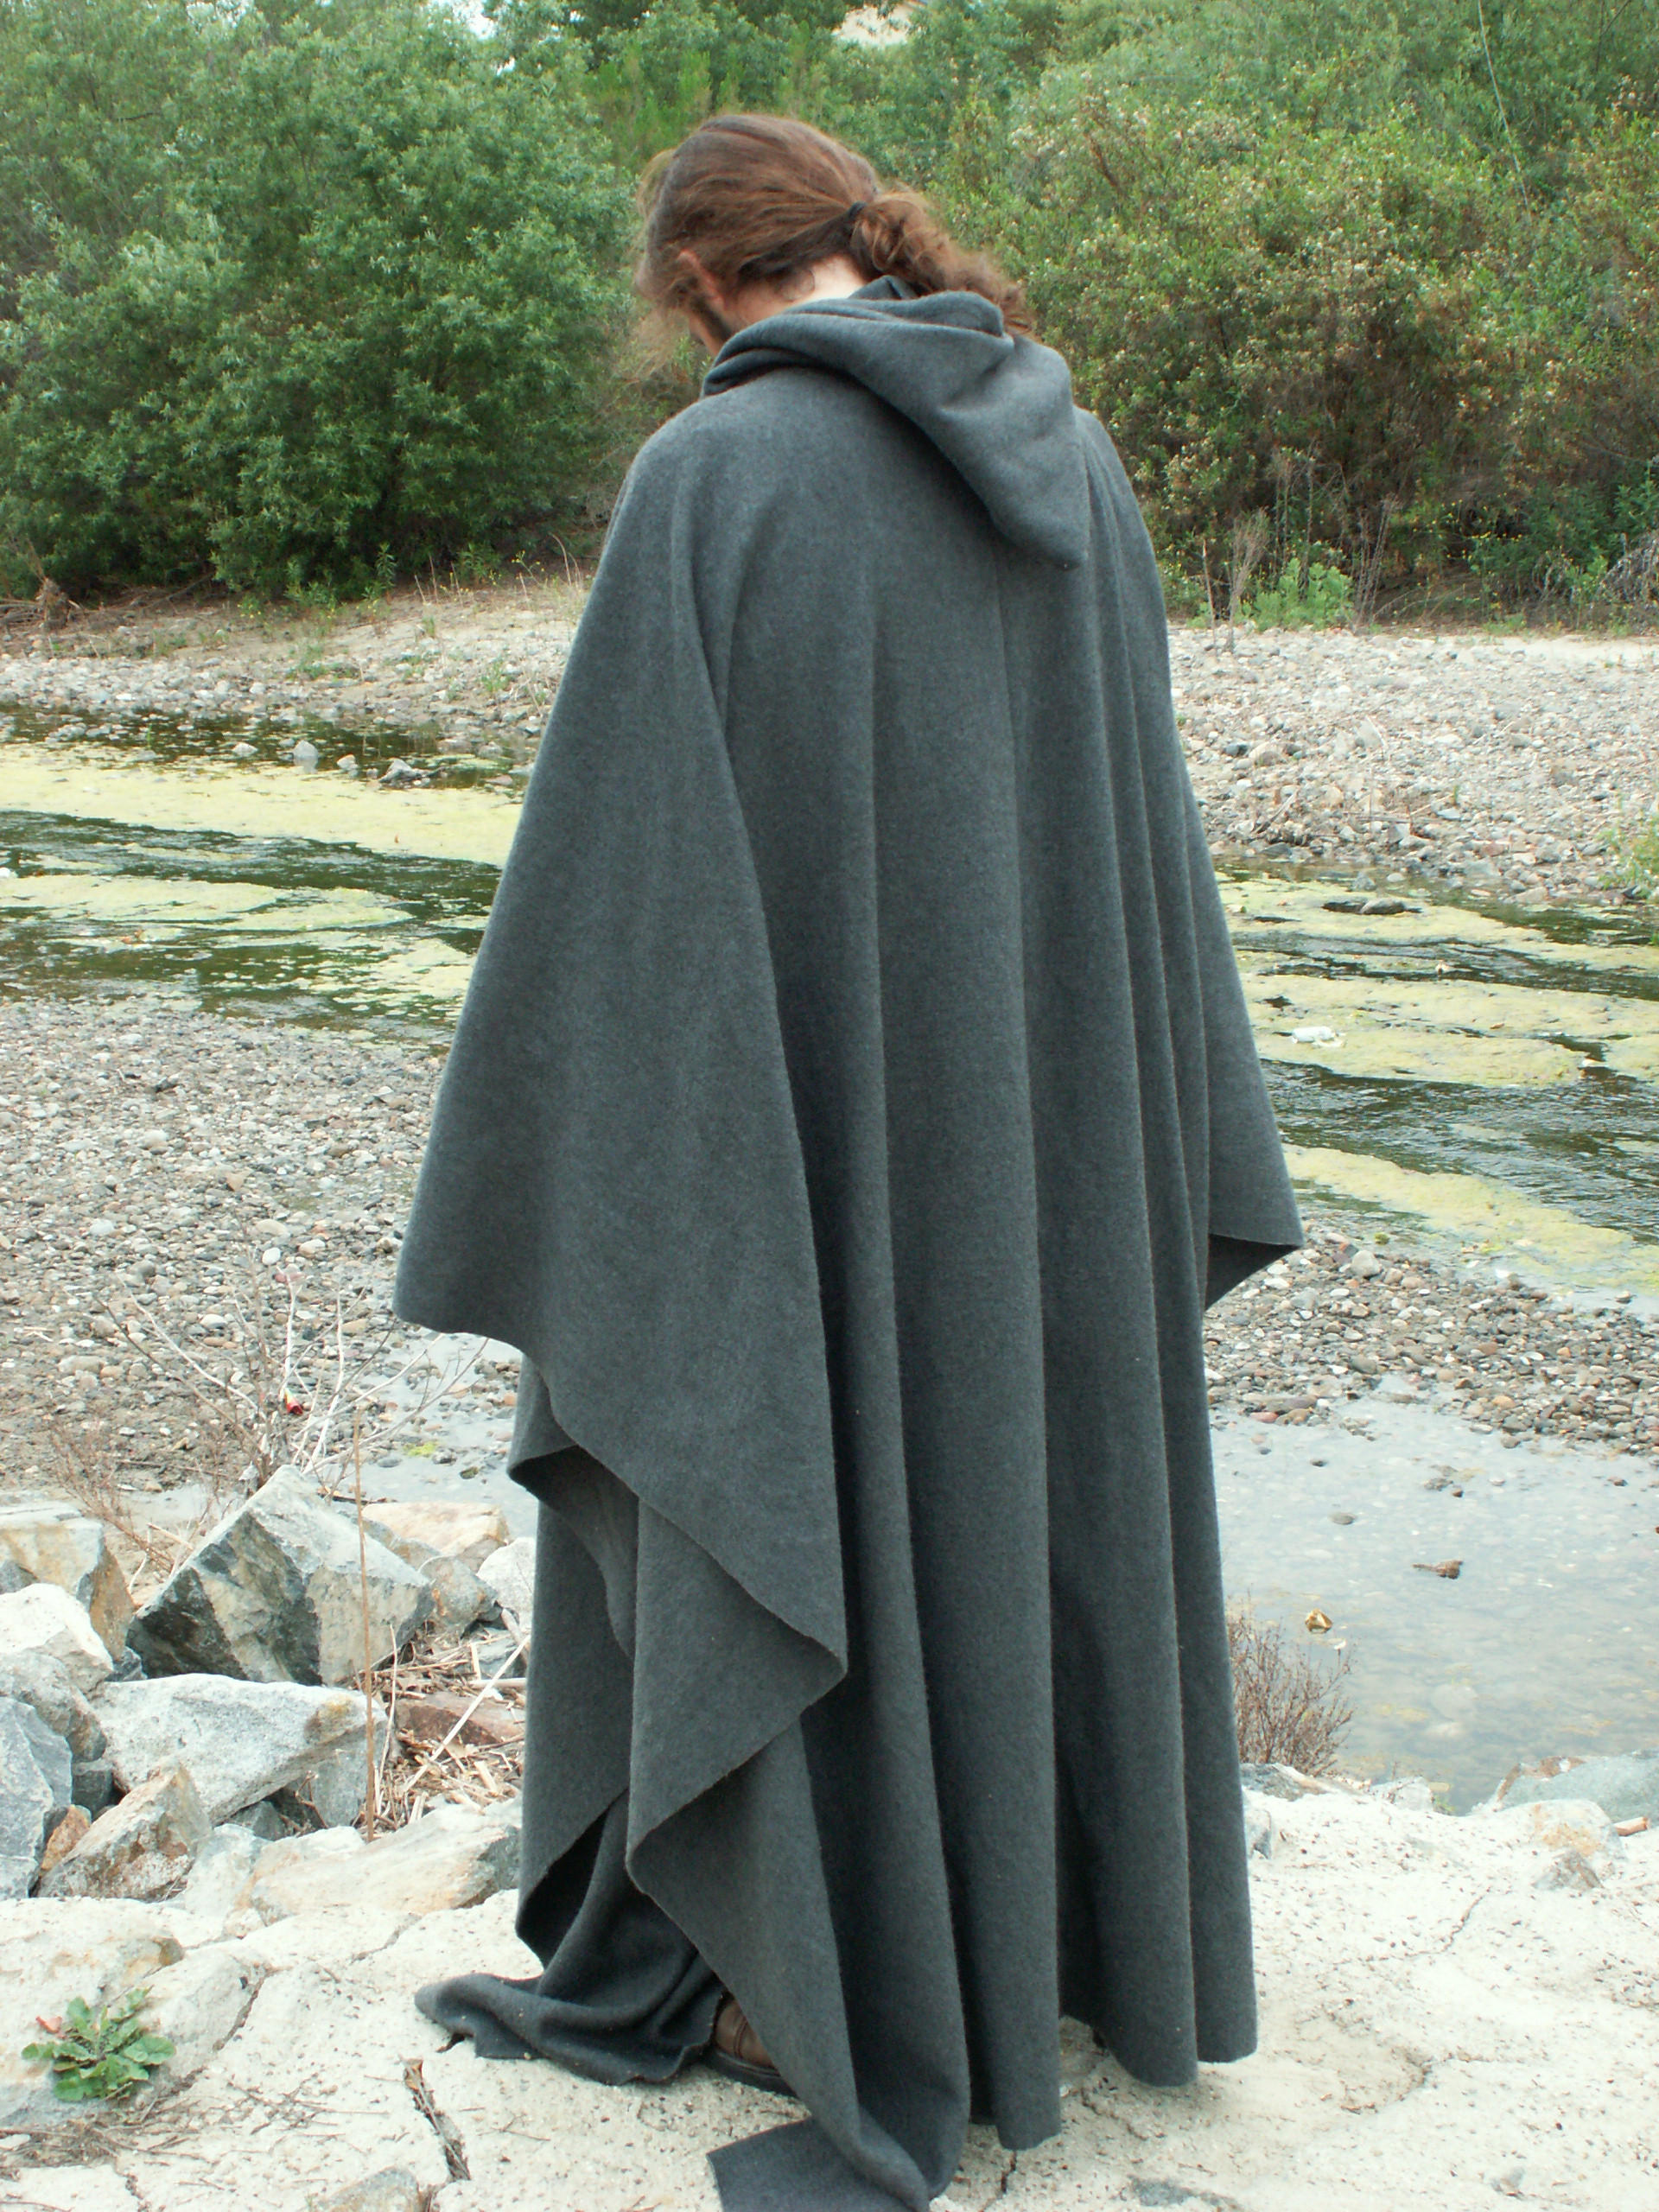 Cloak 15 by AilinStock